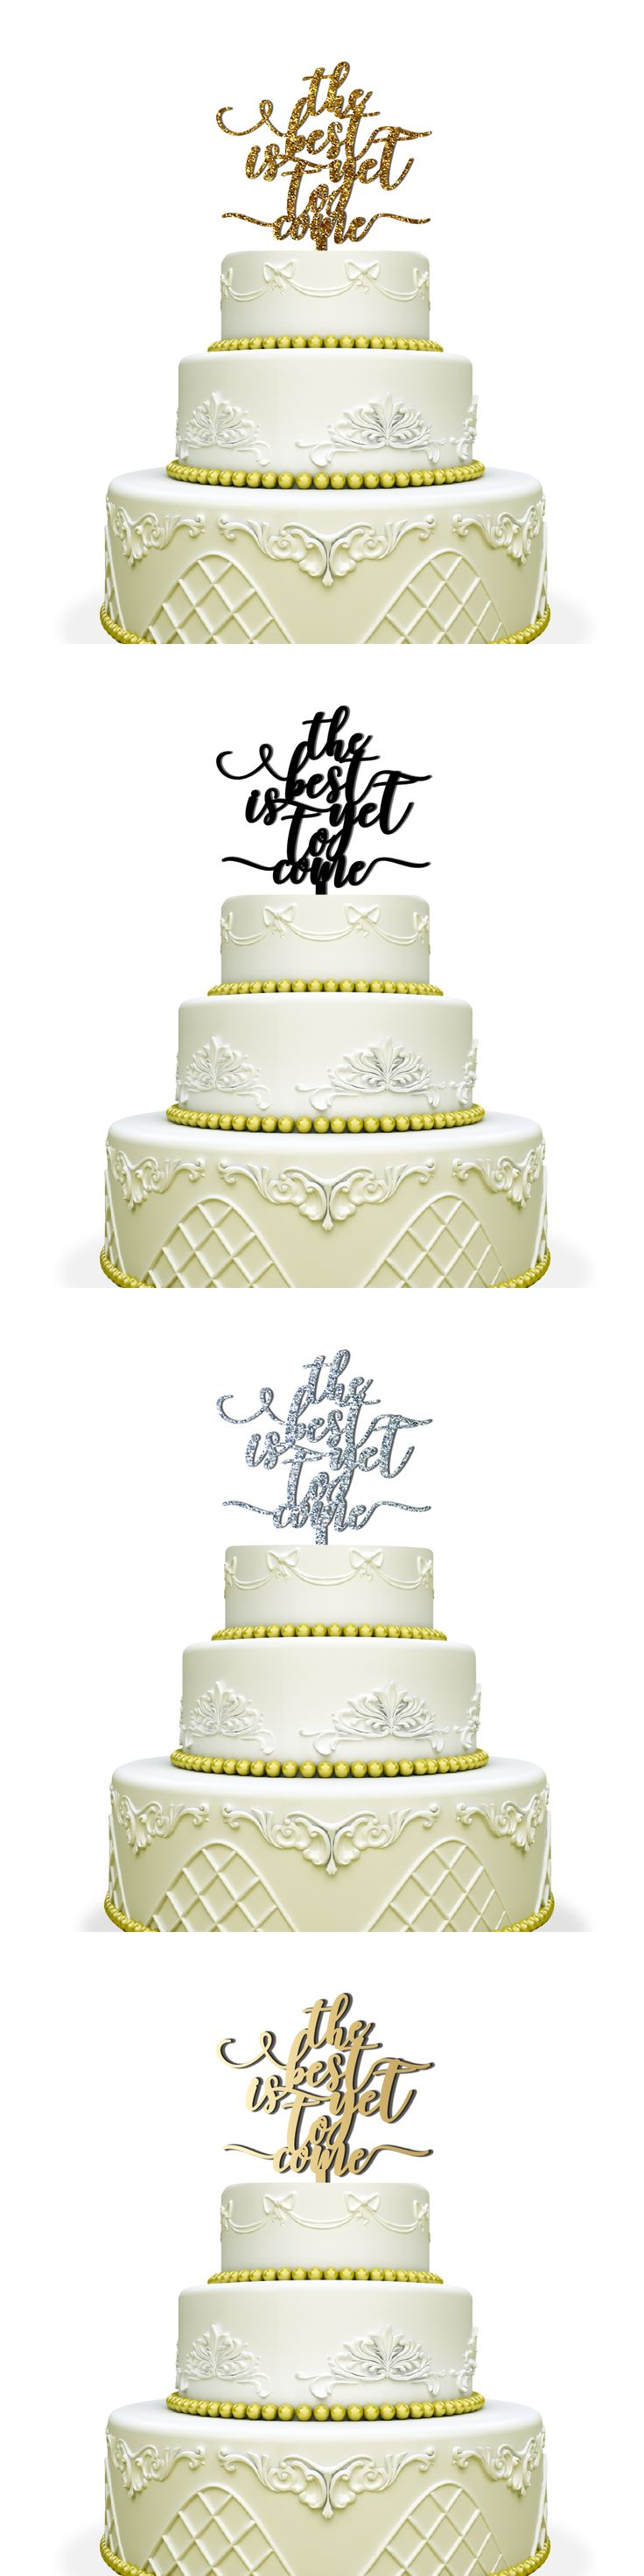 Best 25 Engagement cake toppers ideas on Pinterest